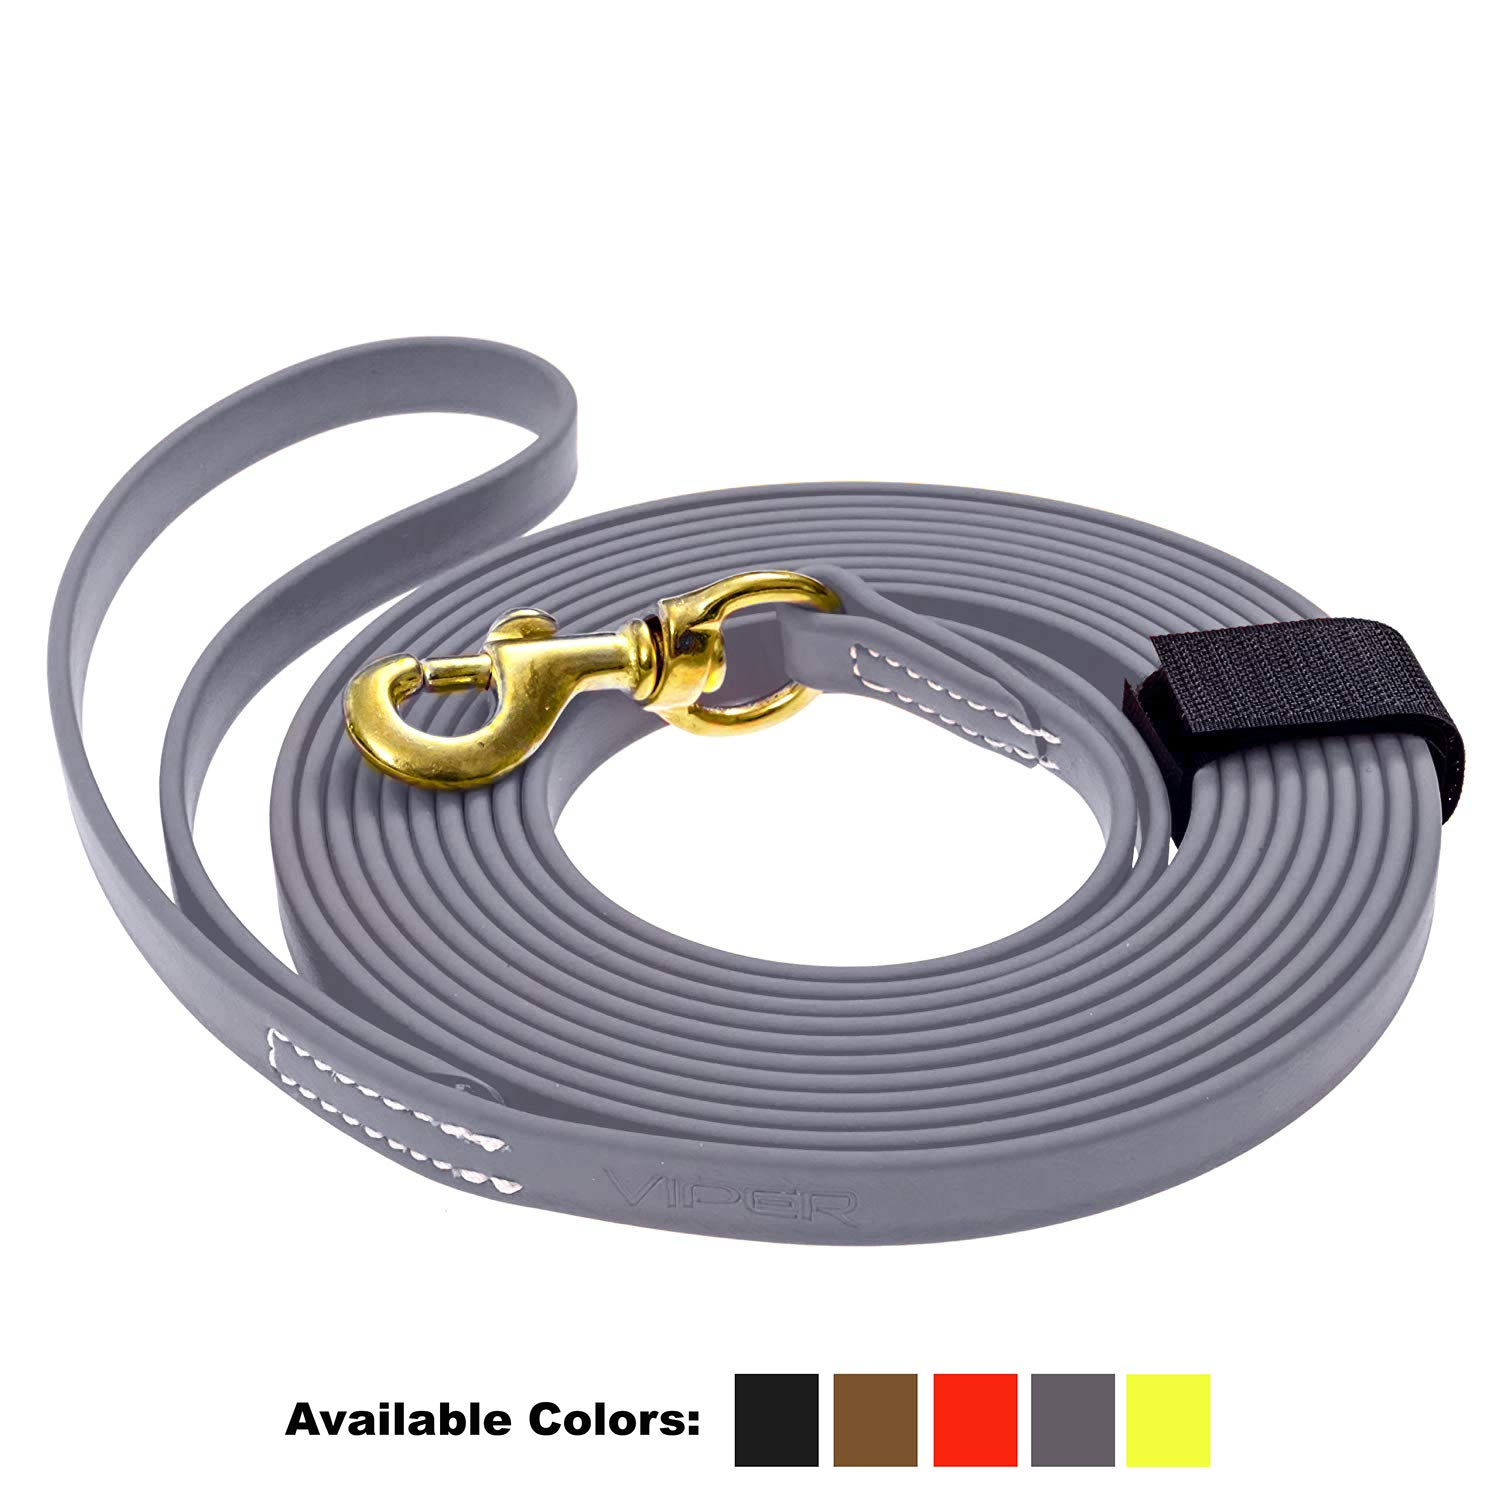 Viper Biothane K9 Working Dog Leash Waterproof Lead for Tracking Training Schutzhund Odor-Proof Long Line with Solid Brass Snap for Puppy Medium and Large Dogs 0.62 in Wide by 33 ft Long Grey